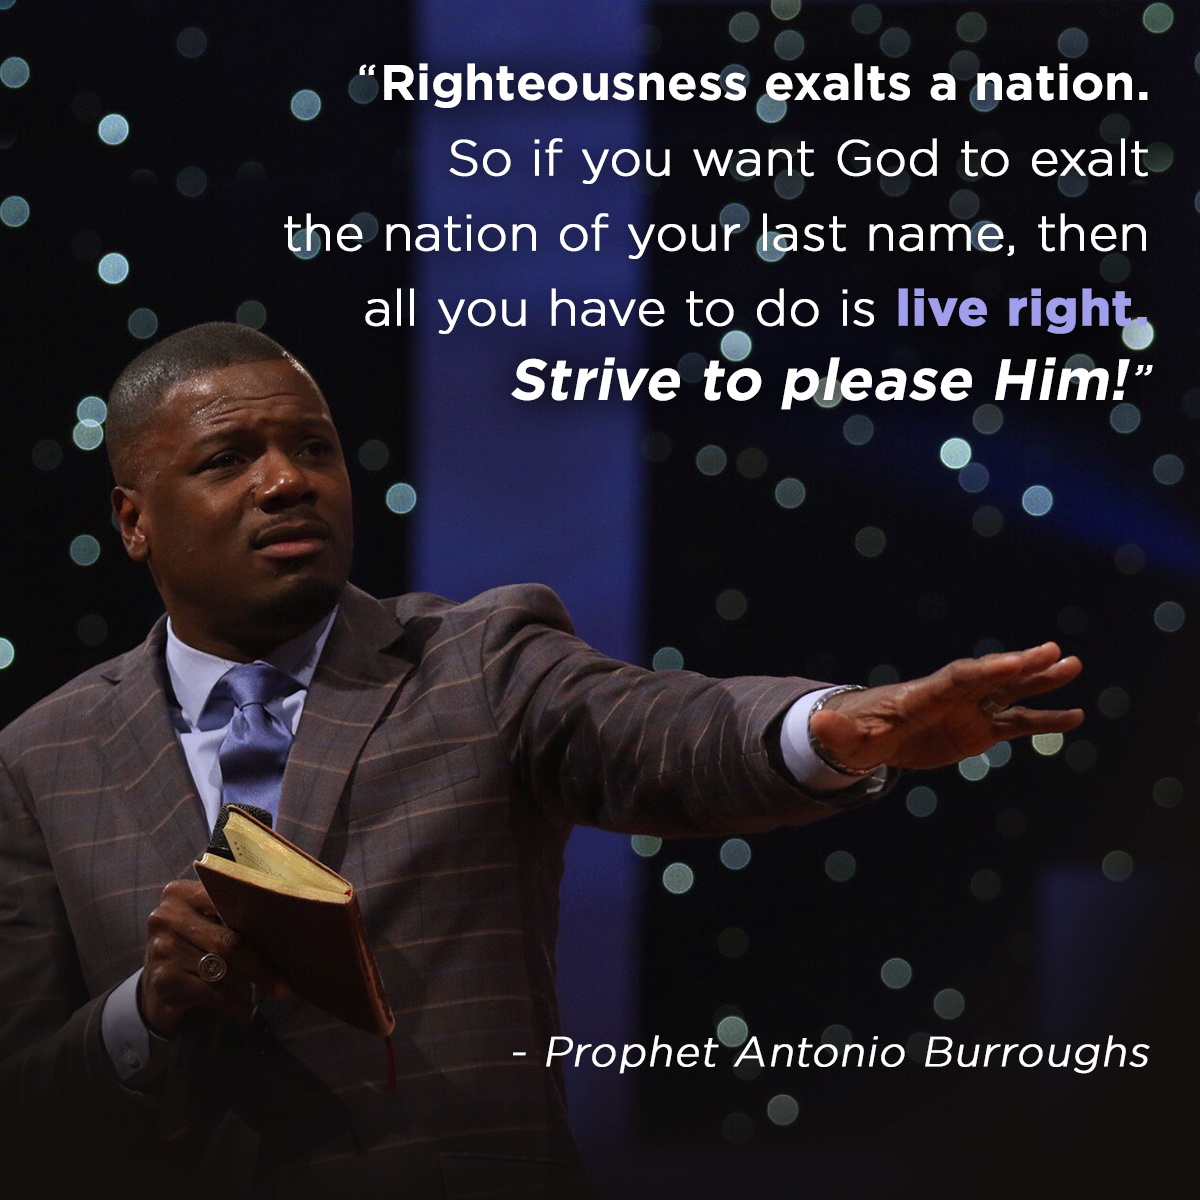 """Righteousness exalts a nation. So if you want God to exalt the nation of your last name, then all you have to do is live right. Strive to please Him!"" – Prophet Antonio Burroughs"